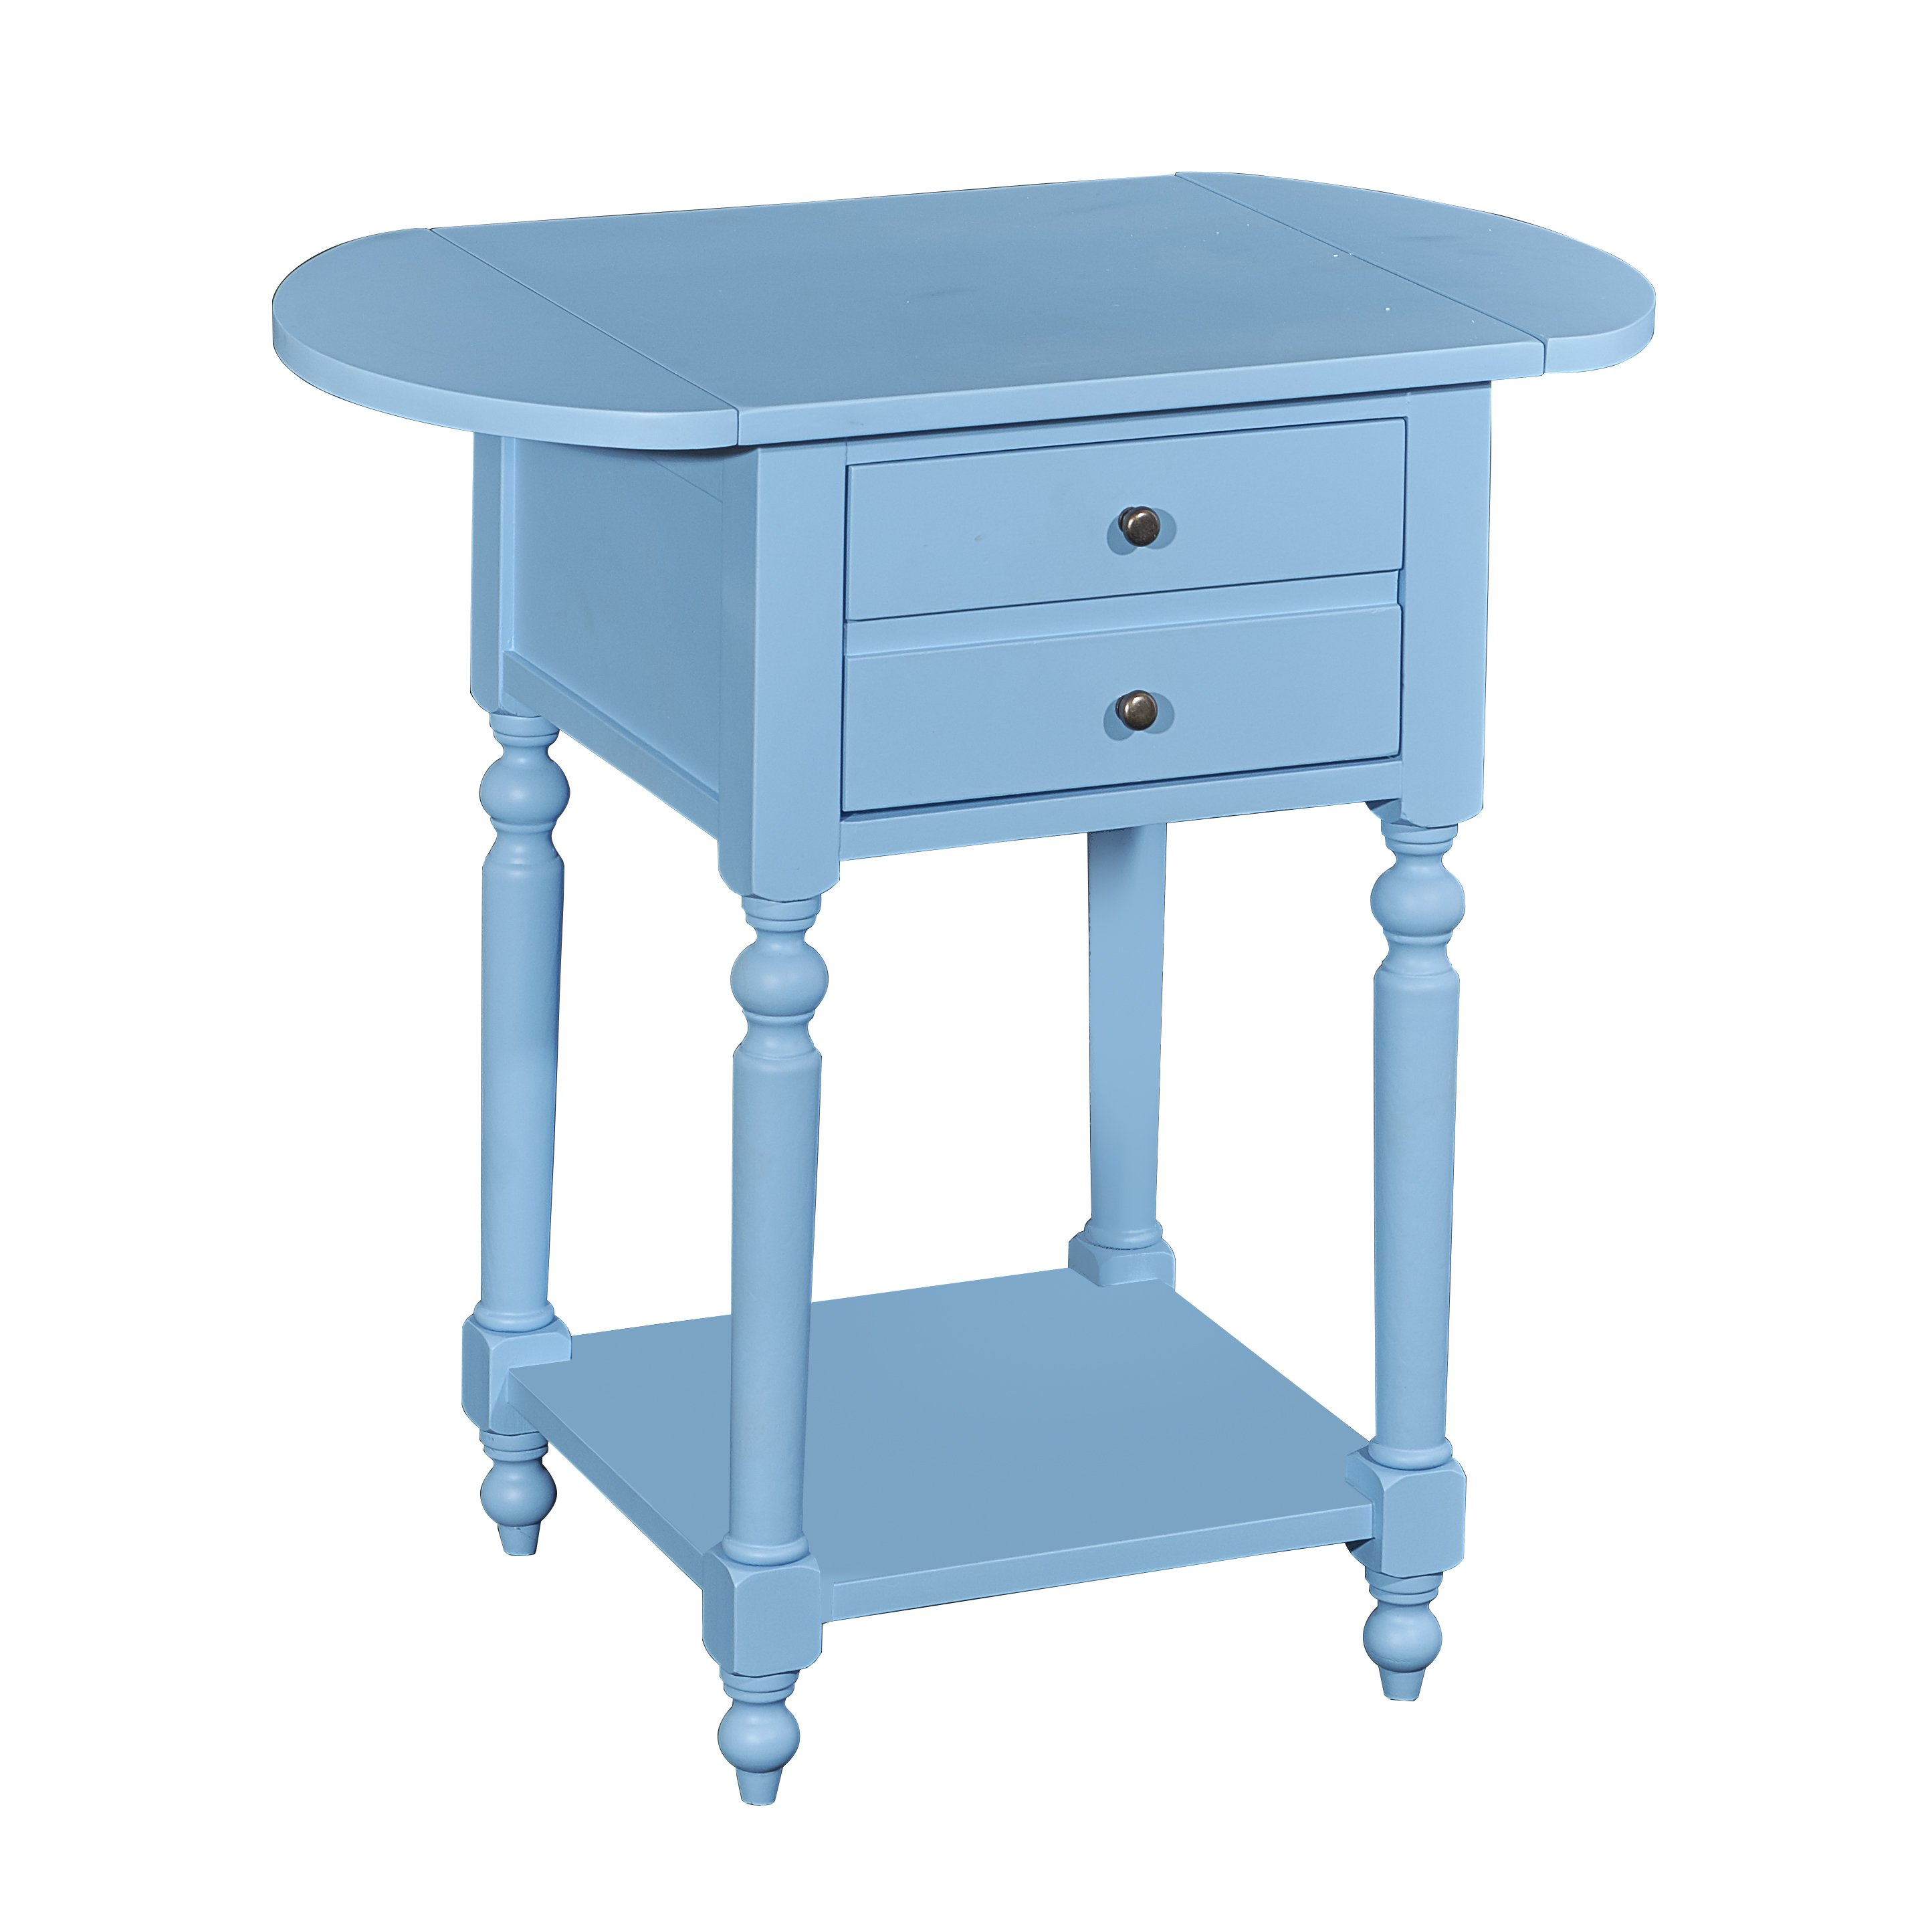 shiloh ocean blue accent table with dropleaf free shipping today half console retro bedroom chair patio end tables rustic coffee storage target threshold furniture white pedestal